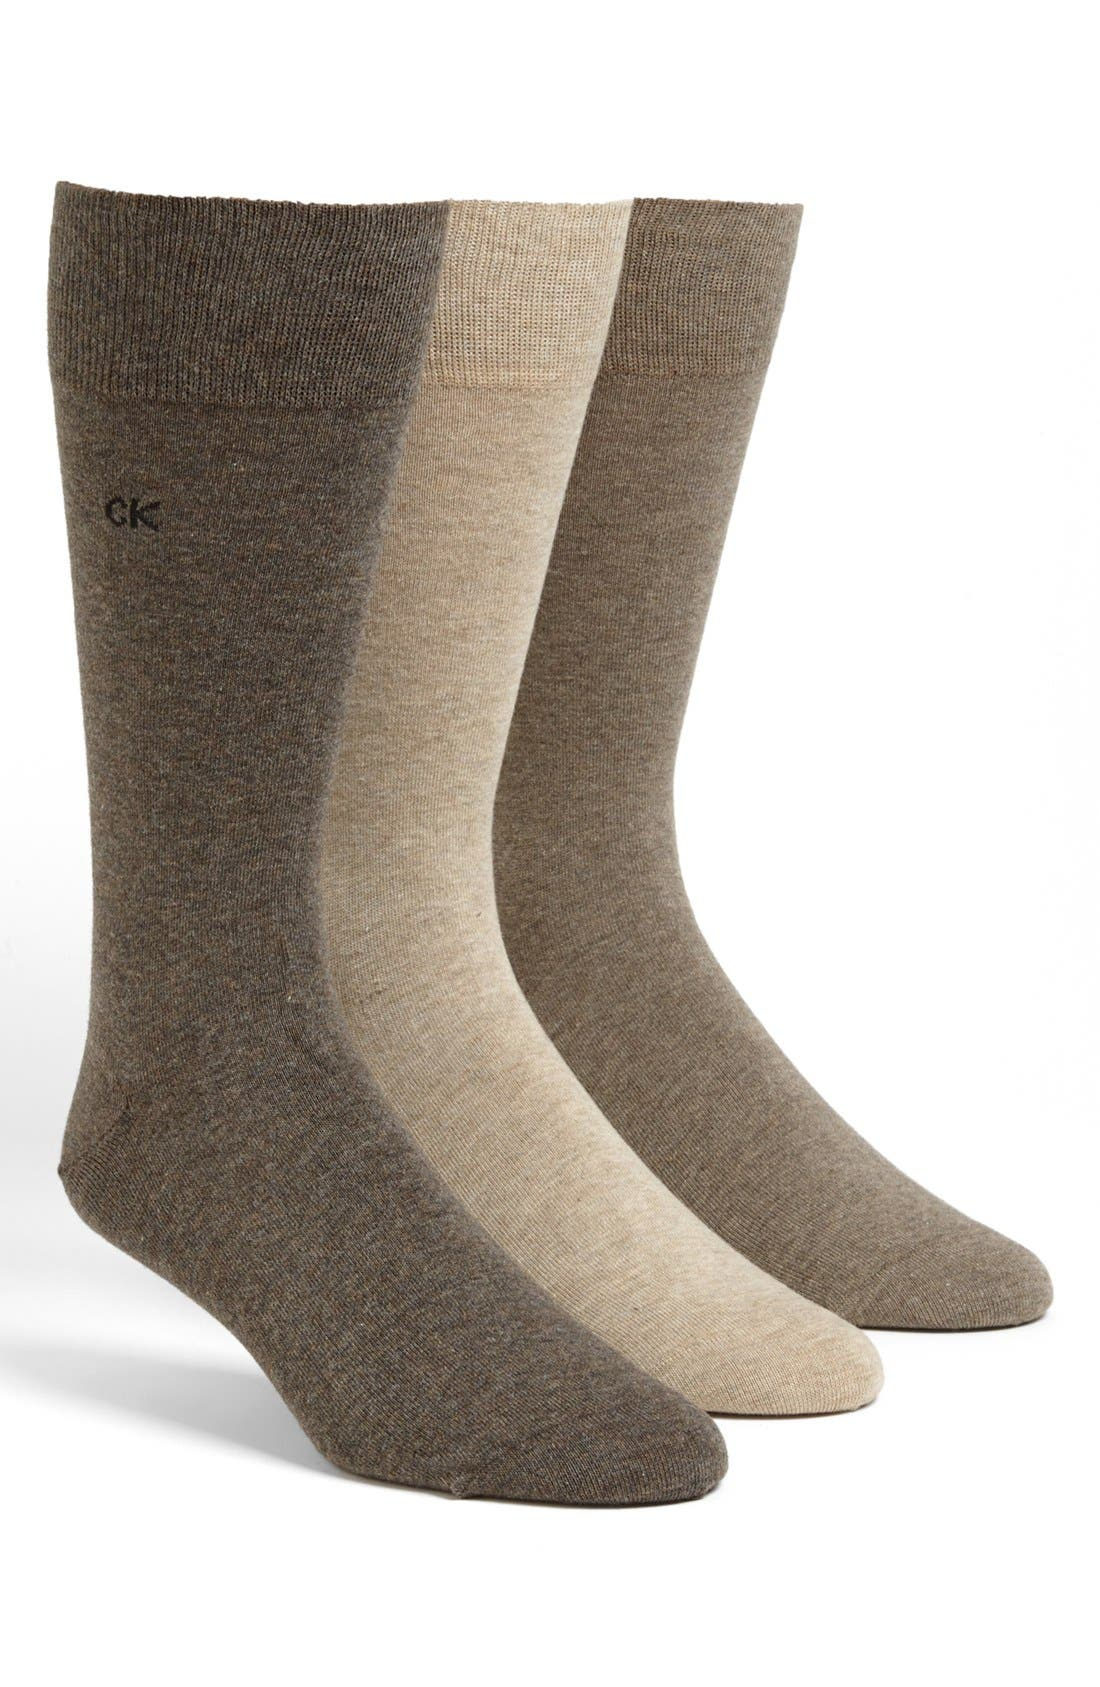 CALVIN KLEIN, Assorted 3-Pack Socks, Main thumbnail 1, color, ASSORTED BROWN